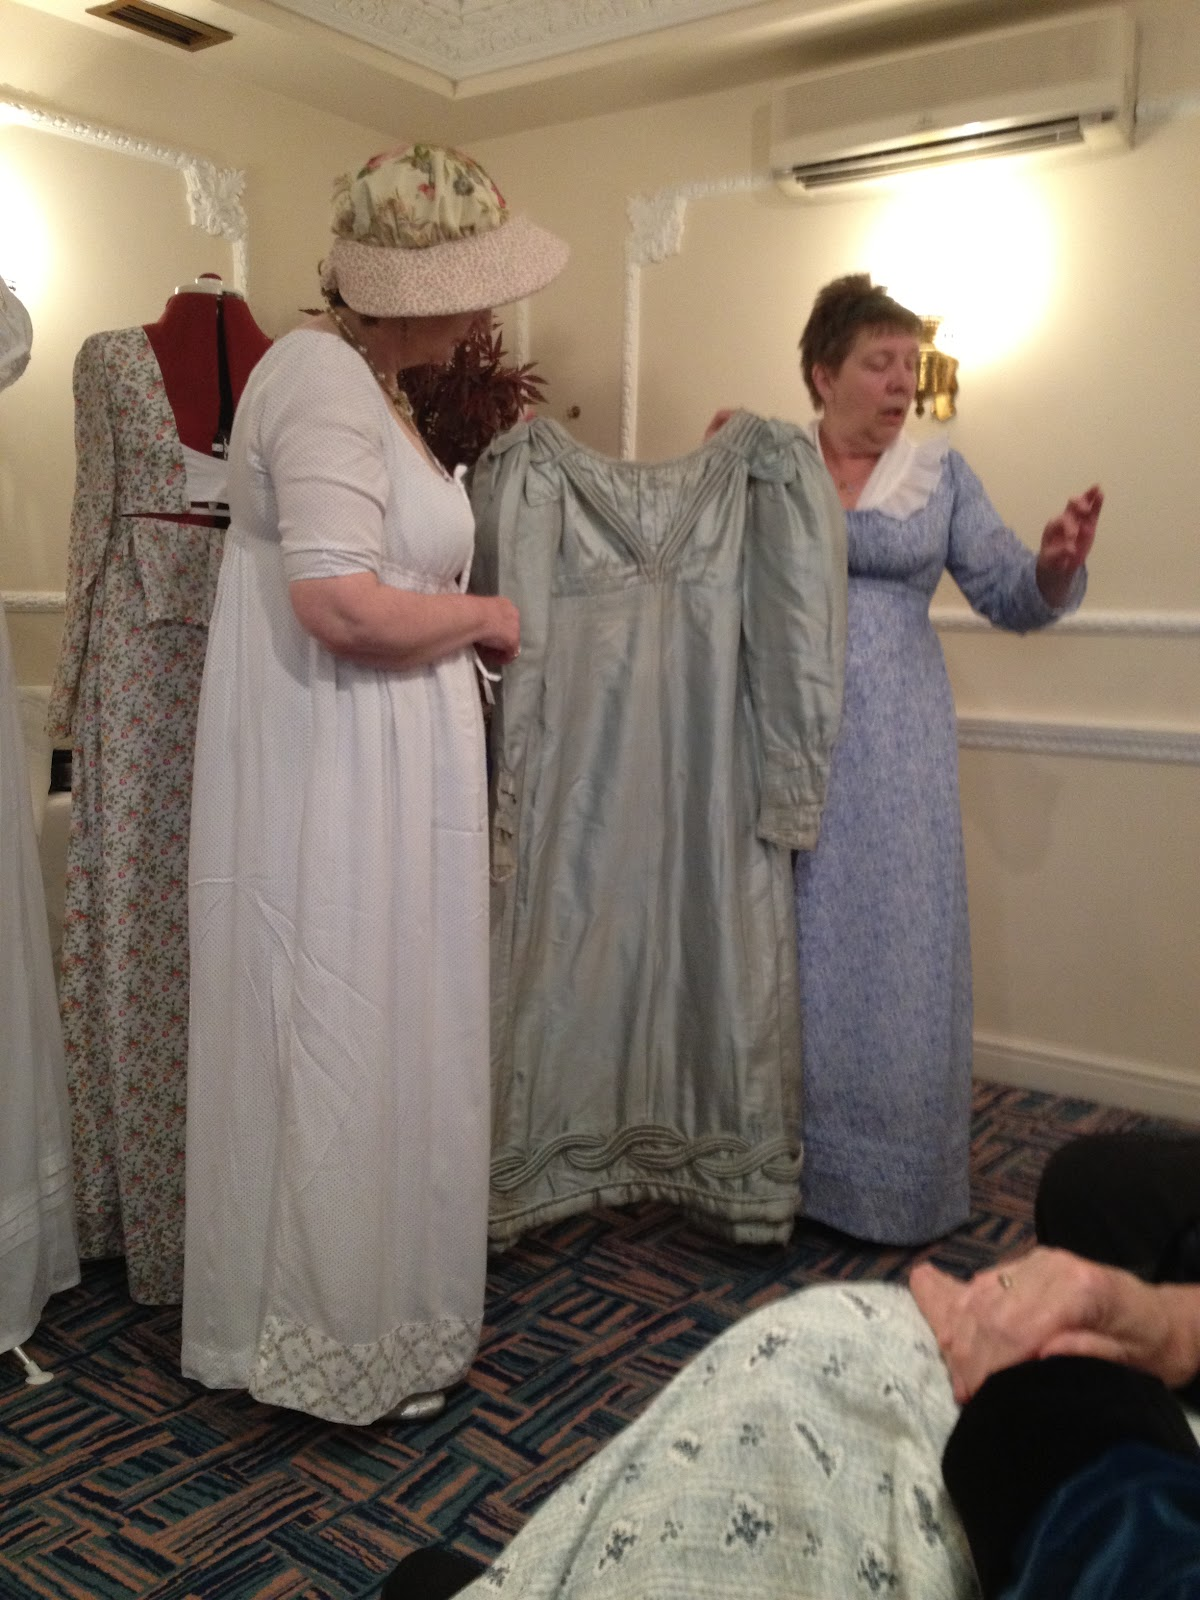 The dress agency horncastle - This Is An Original 1820s Gown That The Festival Organiser Ellen Eley Seen Here In The White Gown Found In An Antiques Shop In Horncastle